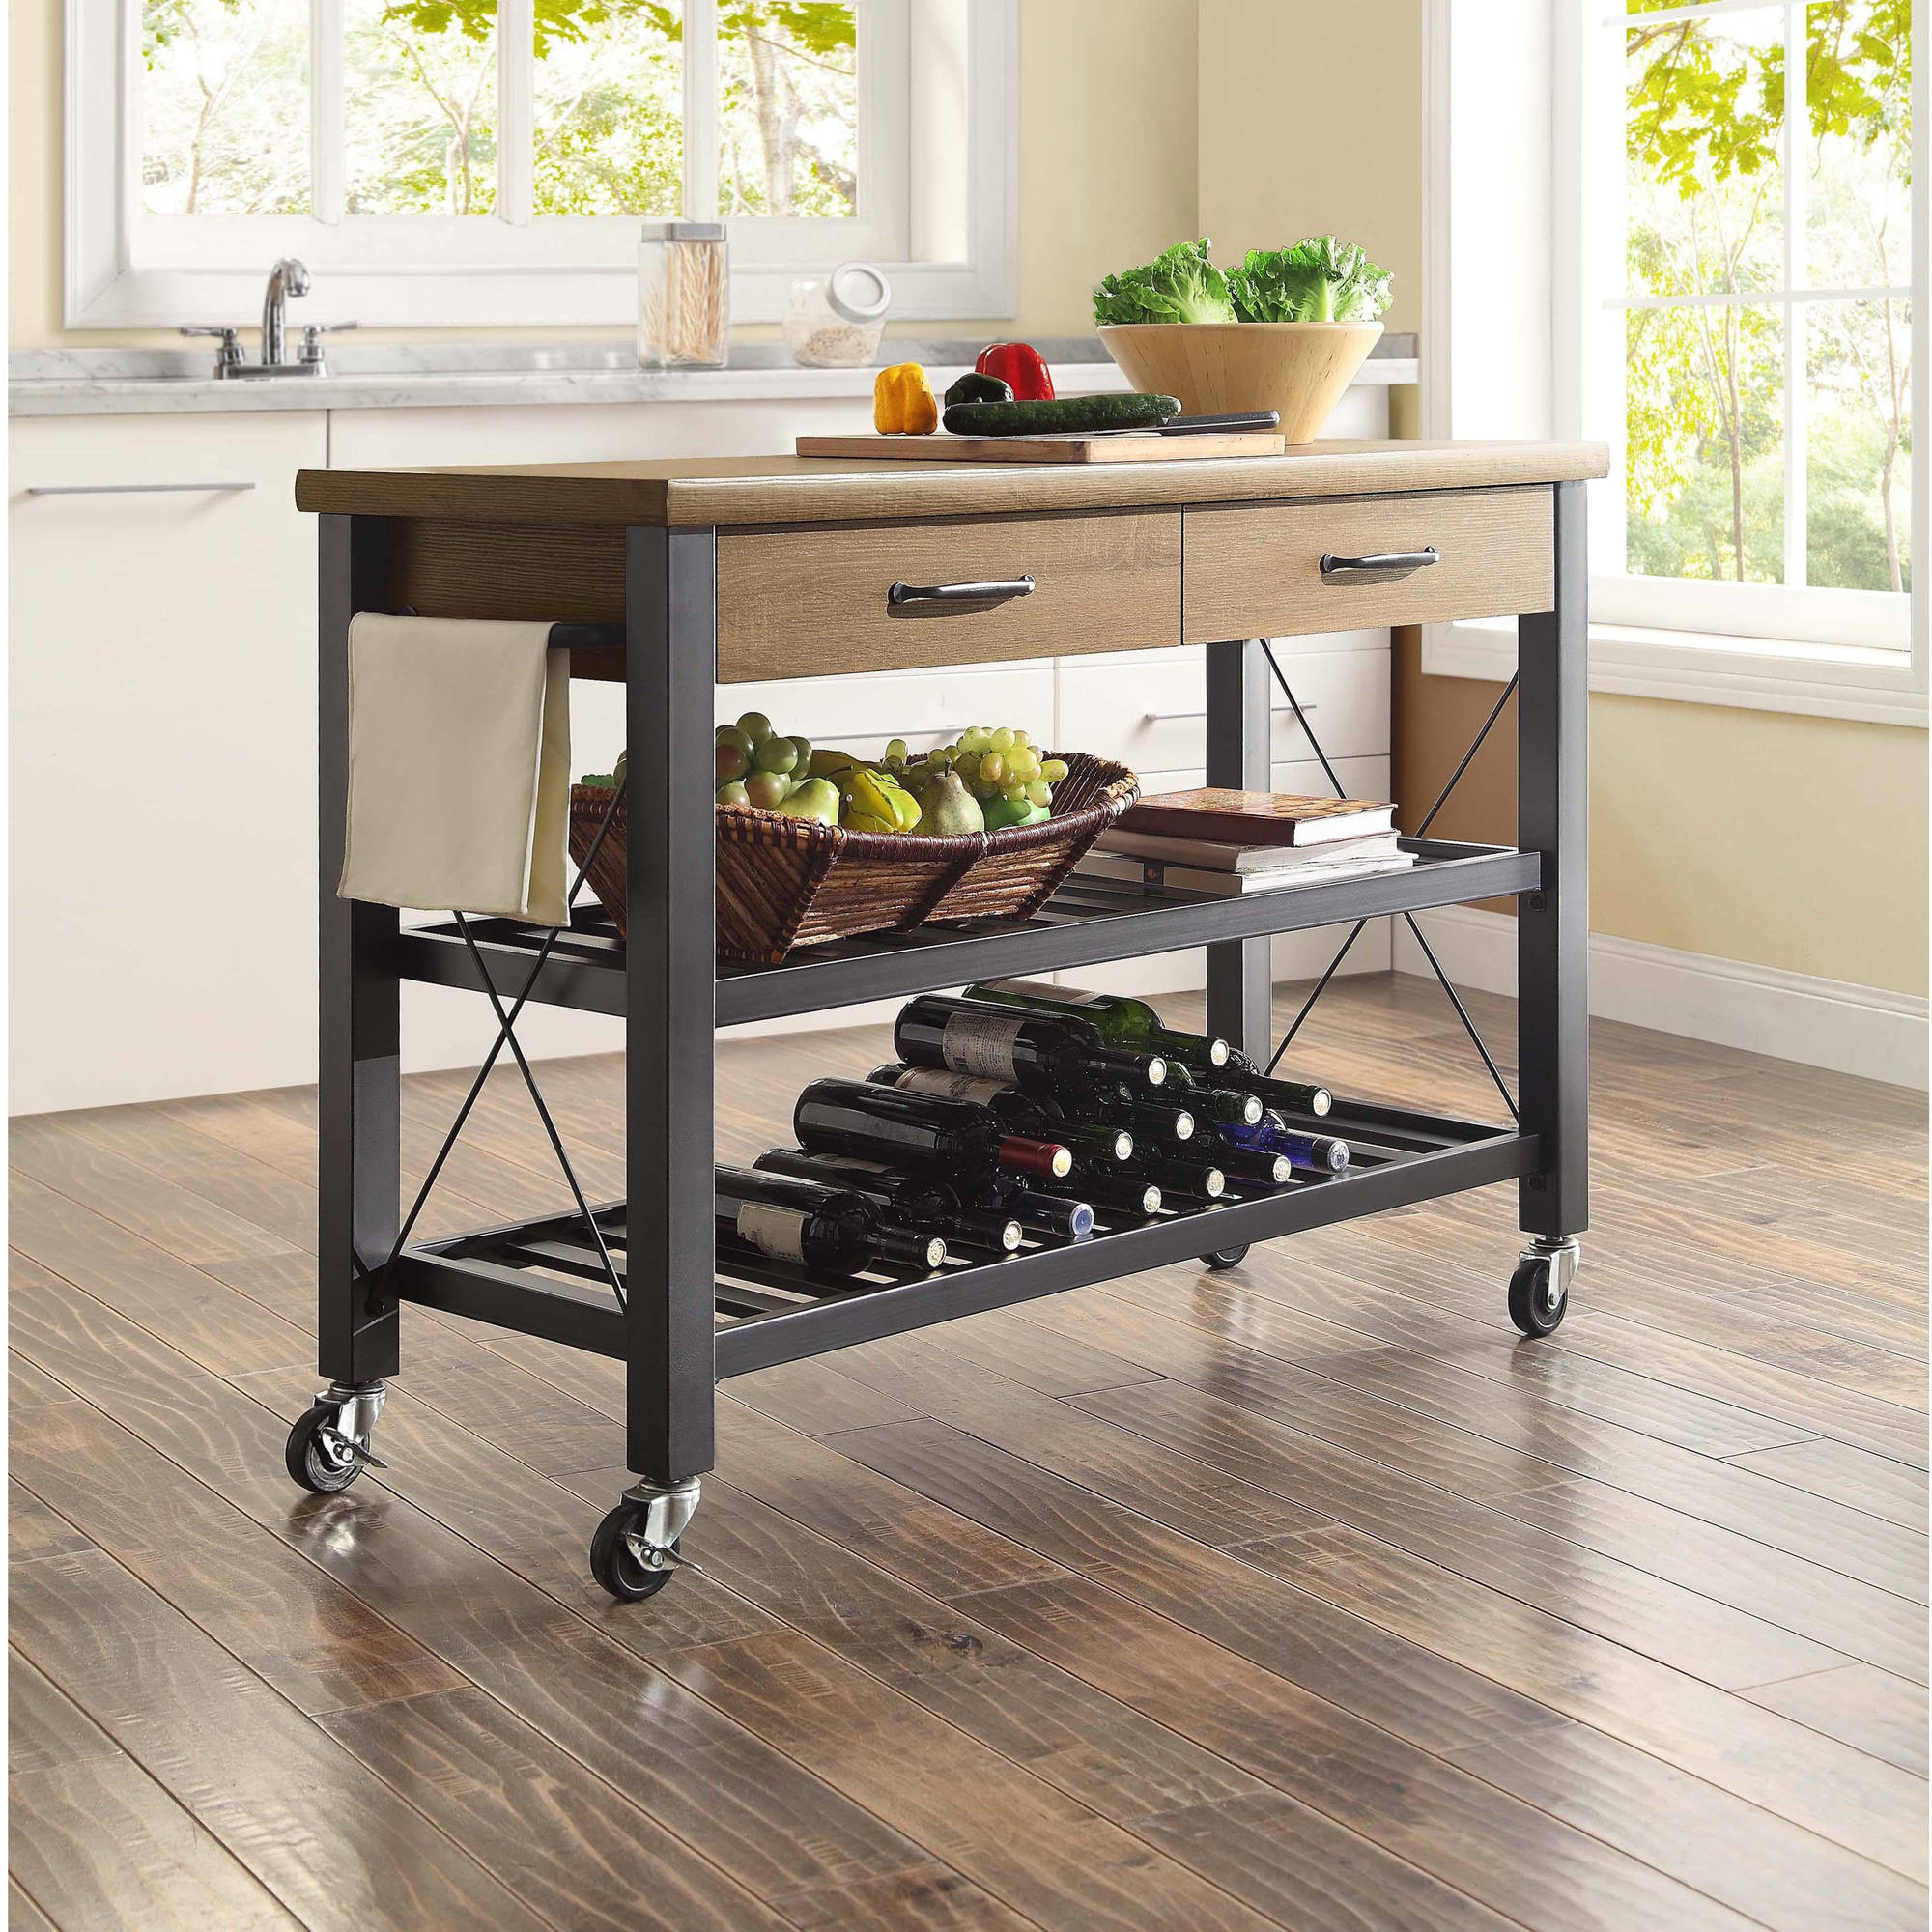 Kitchen Islands & Carts Walmart